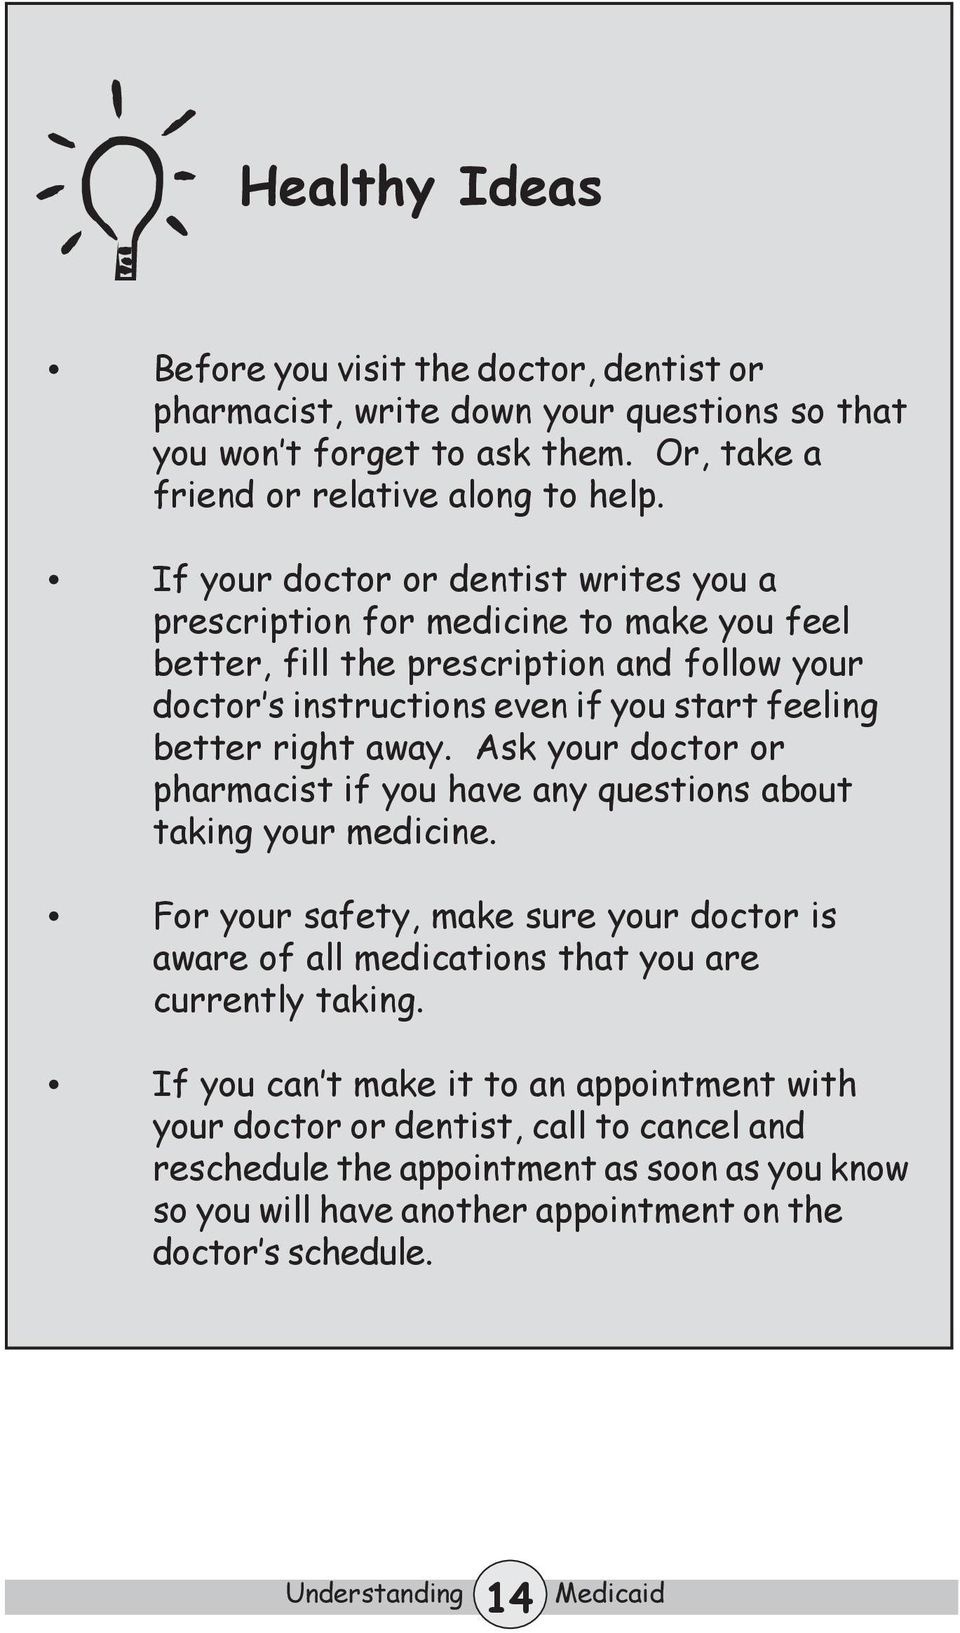 right away. Ask your doctor or pharmacist if you have any questions about taking your medicine.